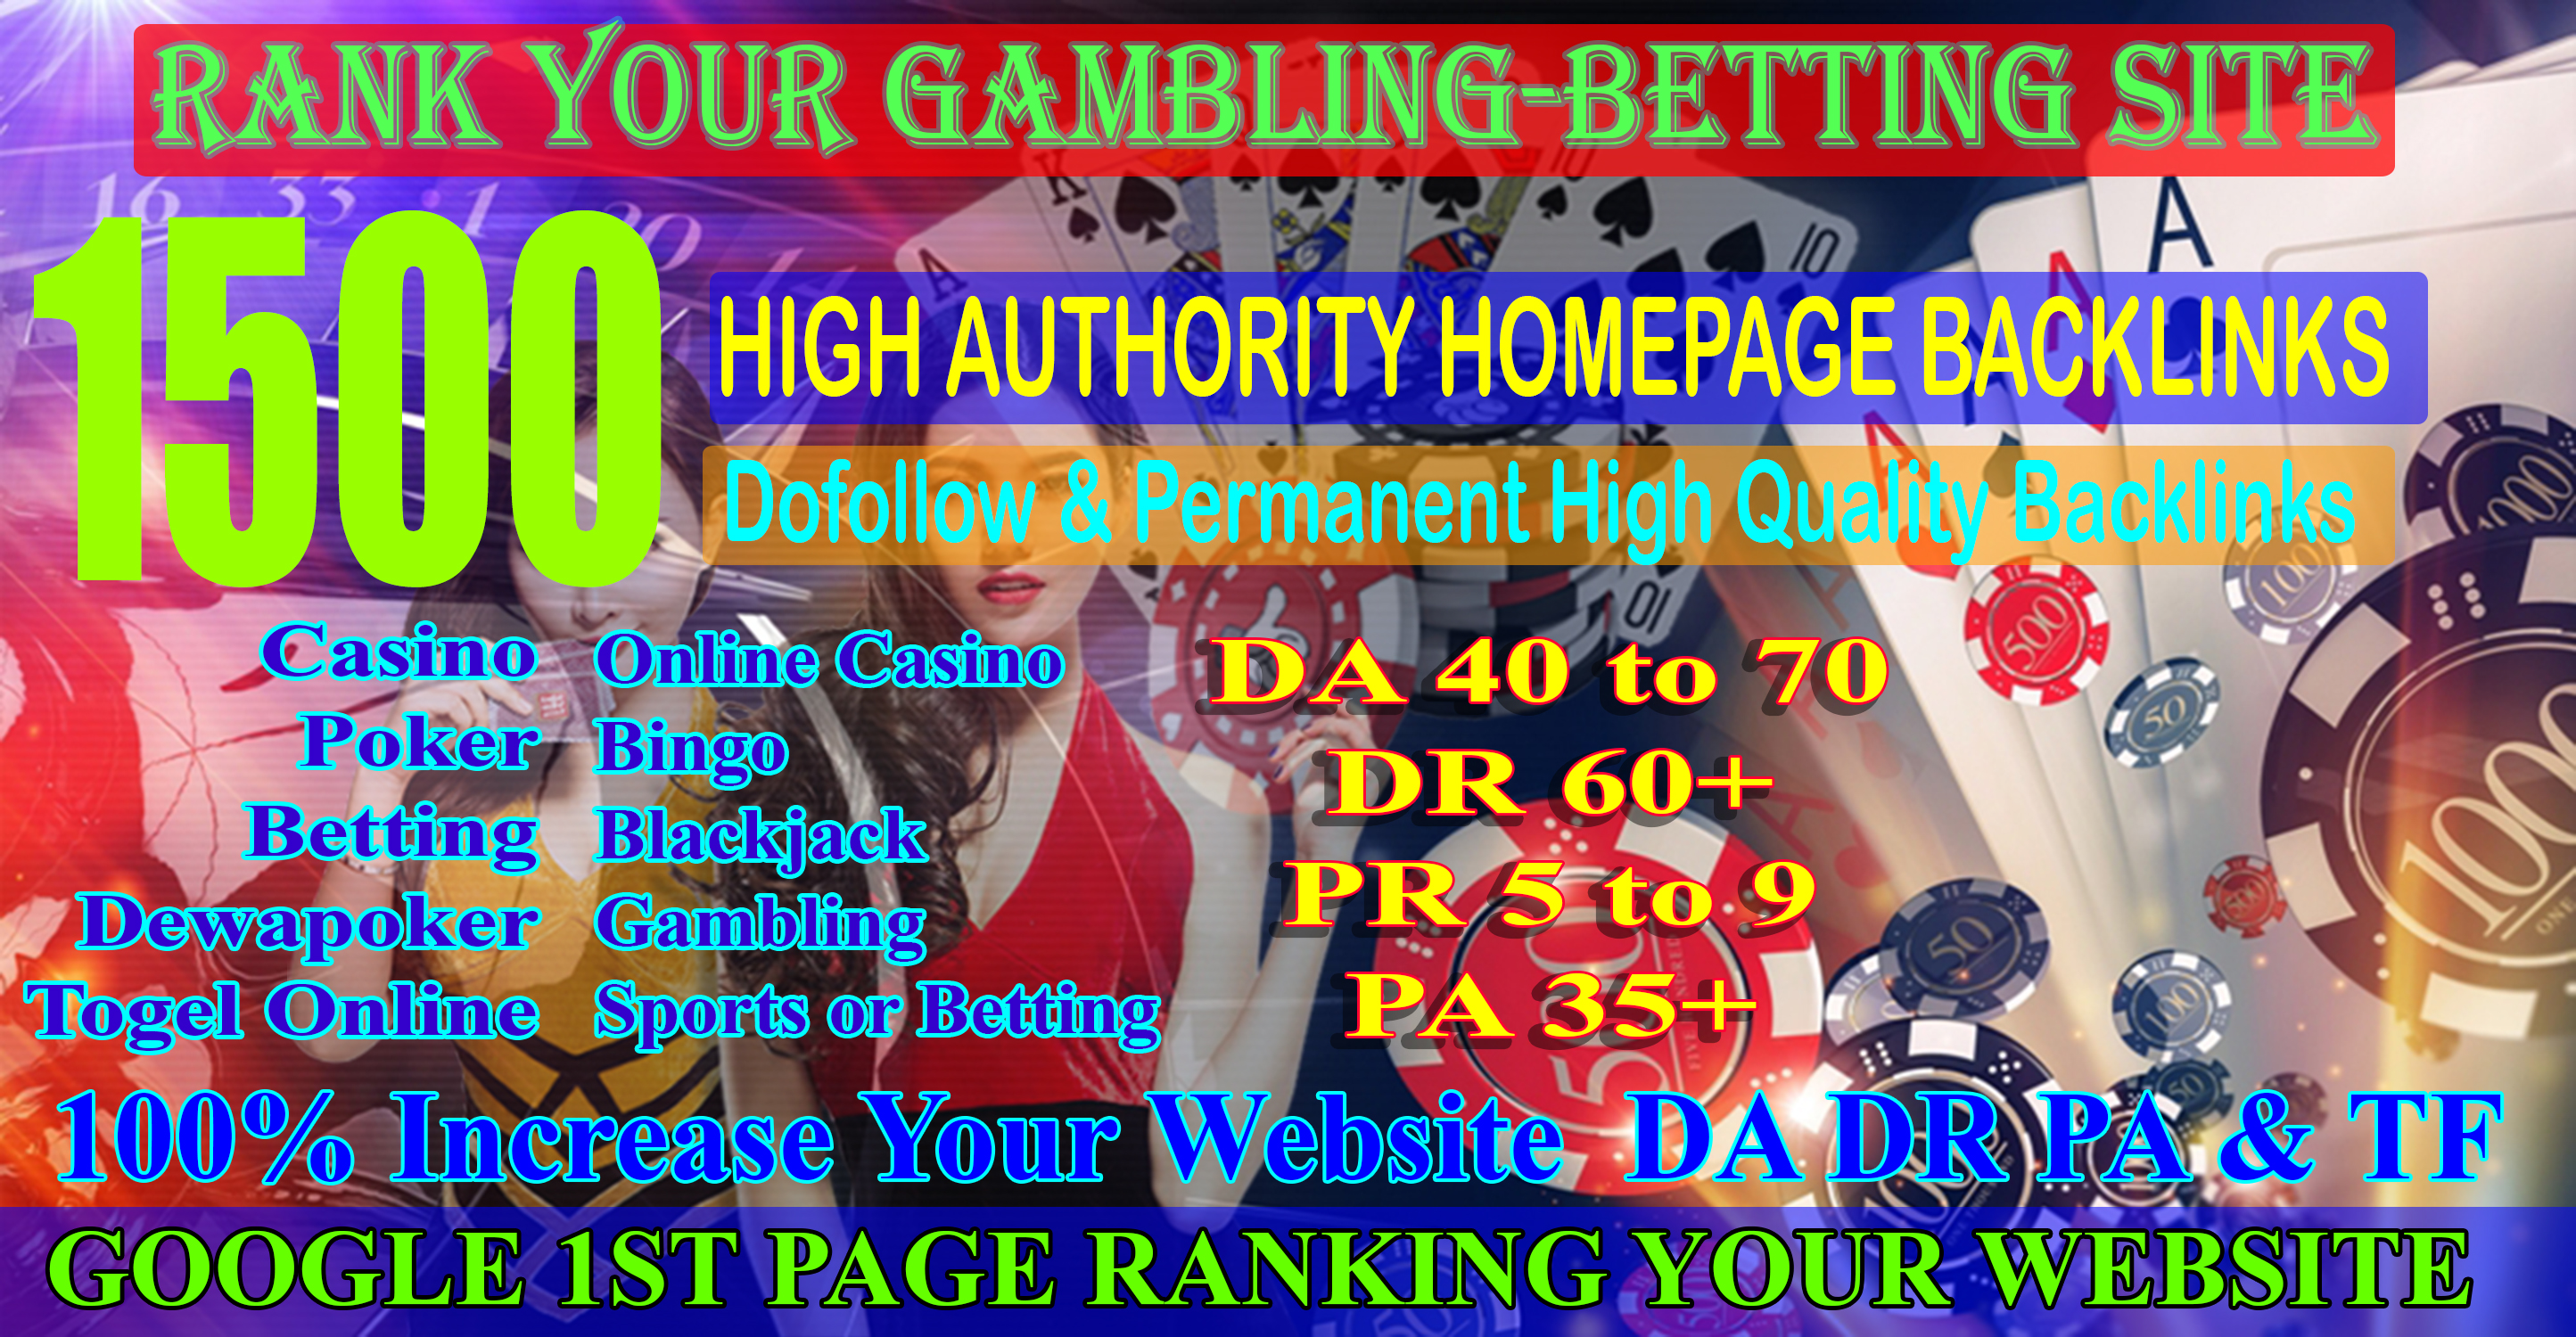 1500 CASINO, Poker, Gambling, Judi bola, High Quality With DA70+ DR60+ Homepage Backlinks